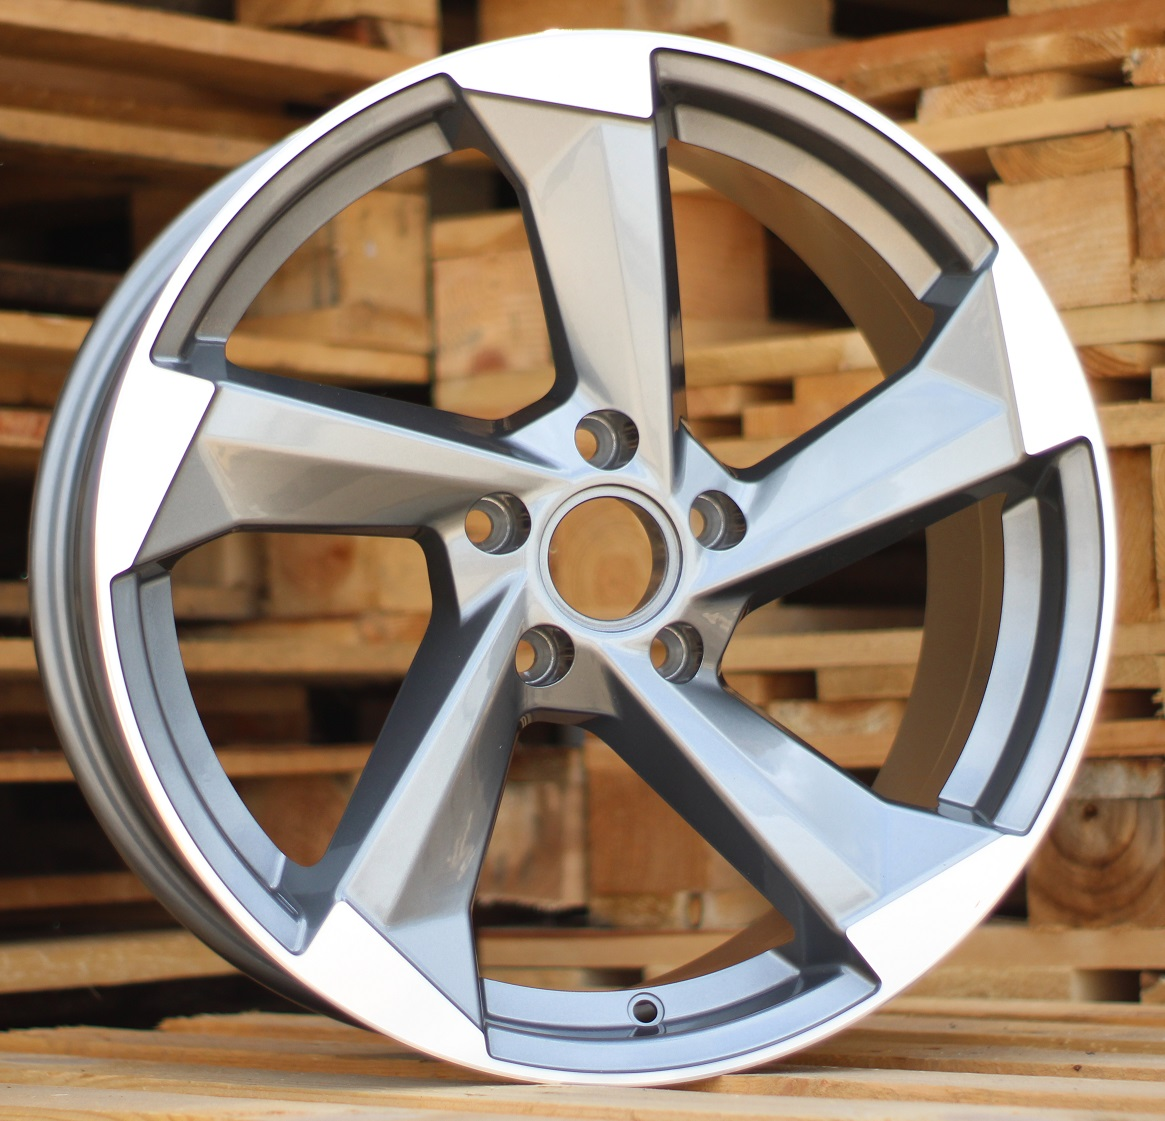 A18X8 5X112 ET42 66.45 XFE150 MG+Powder coating RWR AUD (+3eur) (P1)## 8x18 ET42 5x112